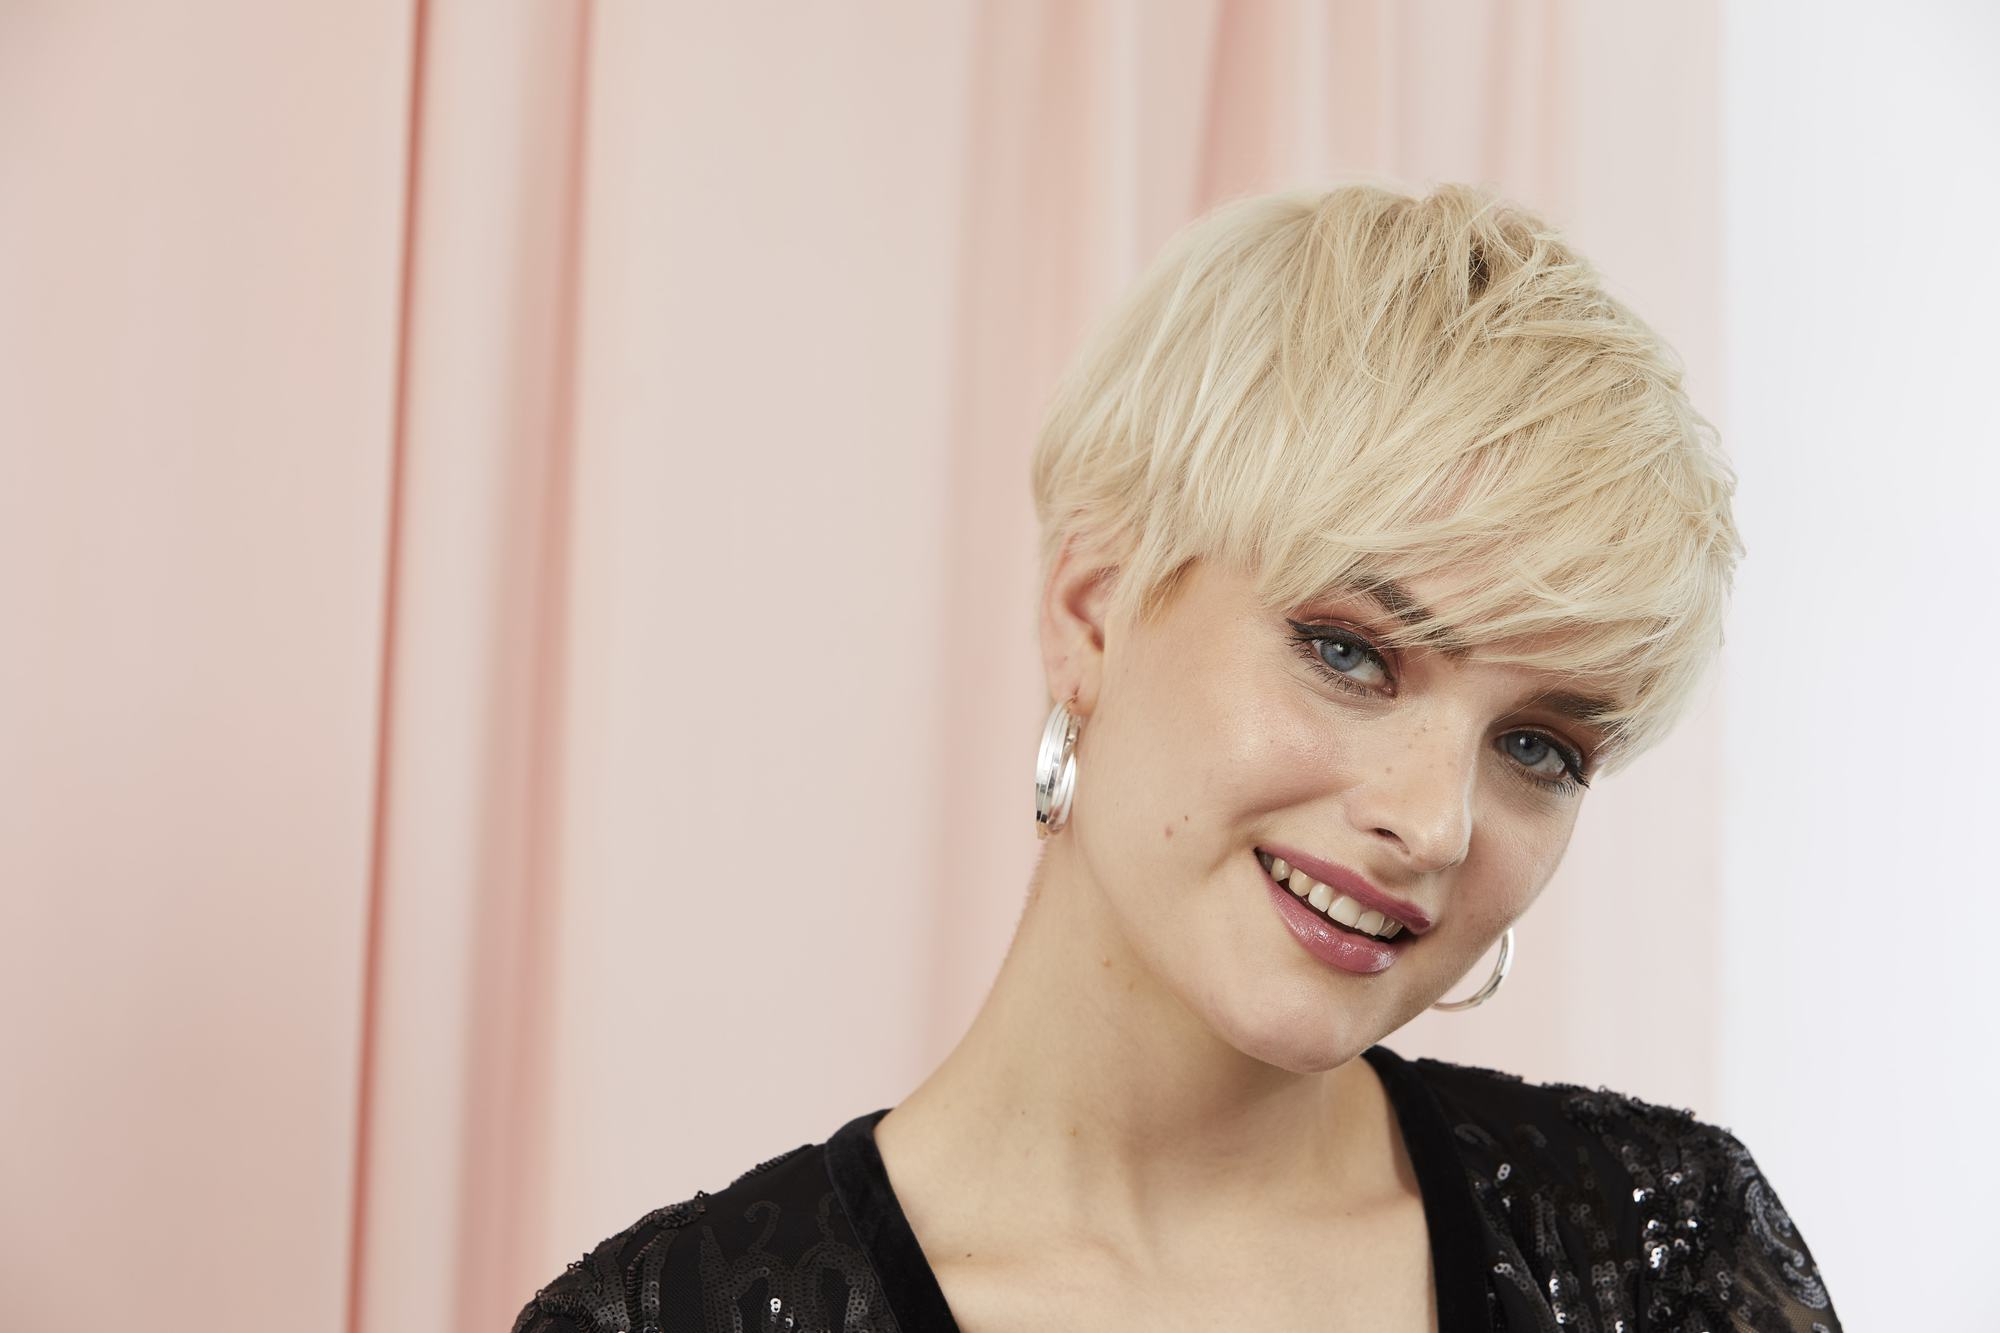 35 Best Pixie Cut Hairstyles For 2019 You Will Want To See Intended For Cropped Hairstyles For Round Faces (Gallery 19 of 20)